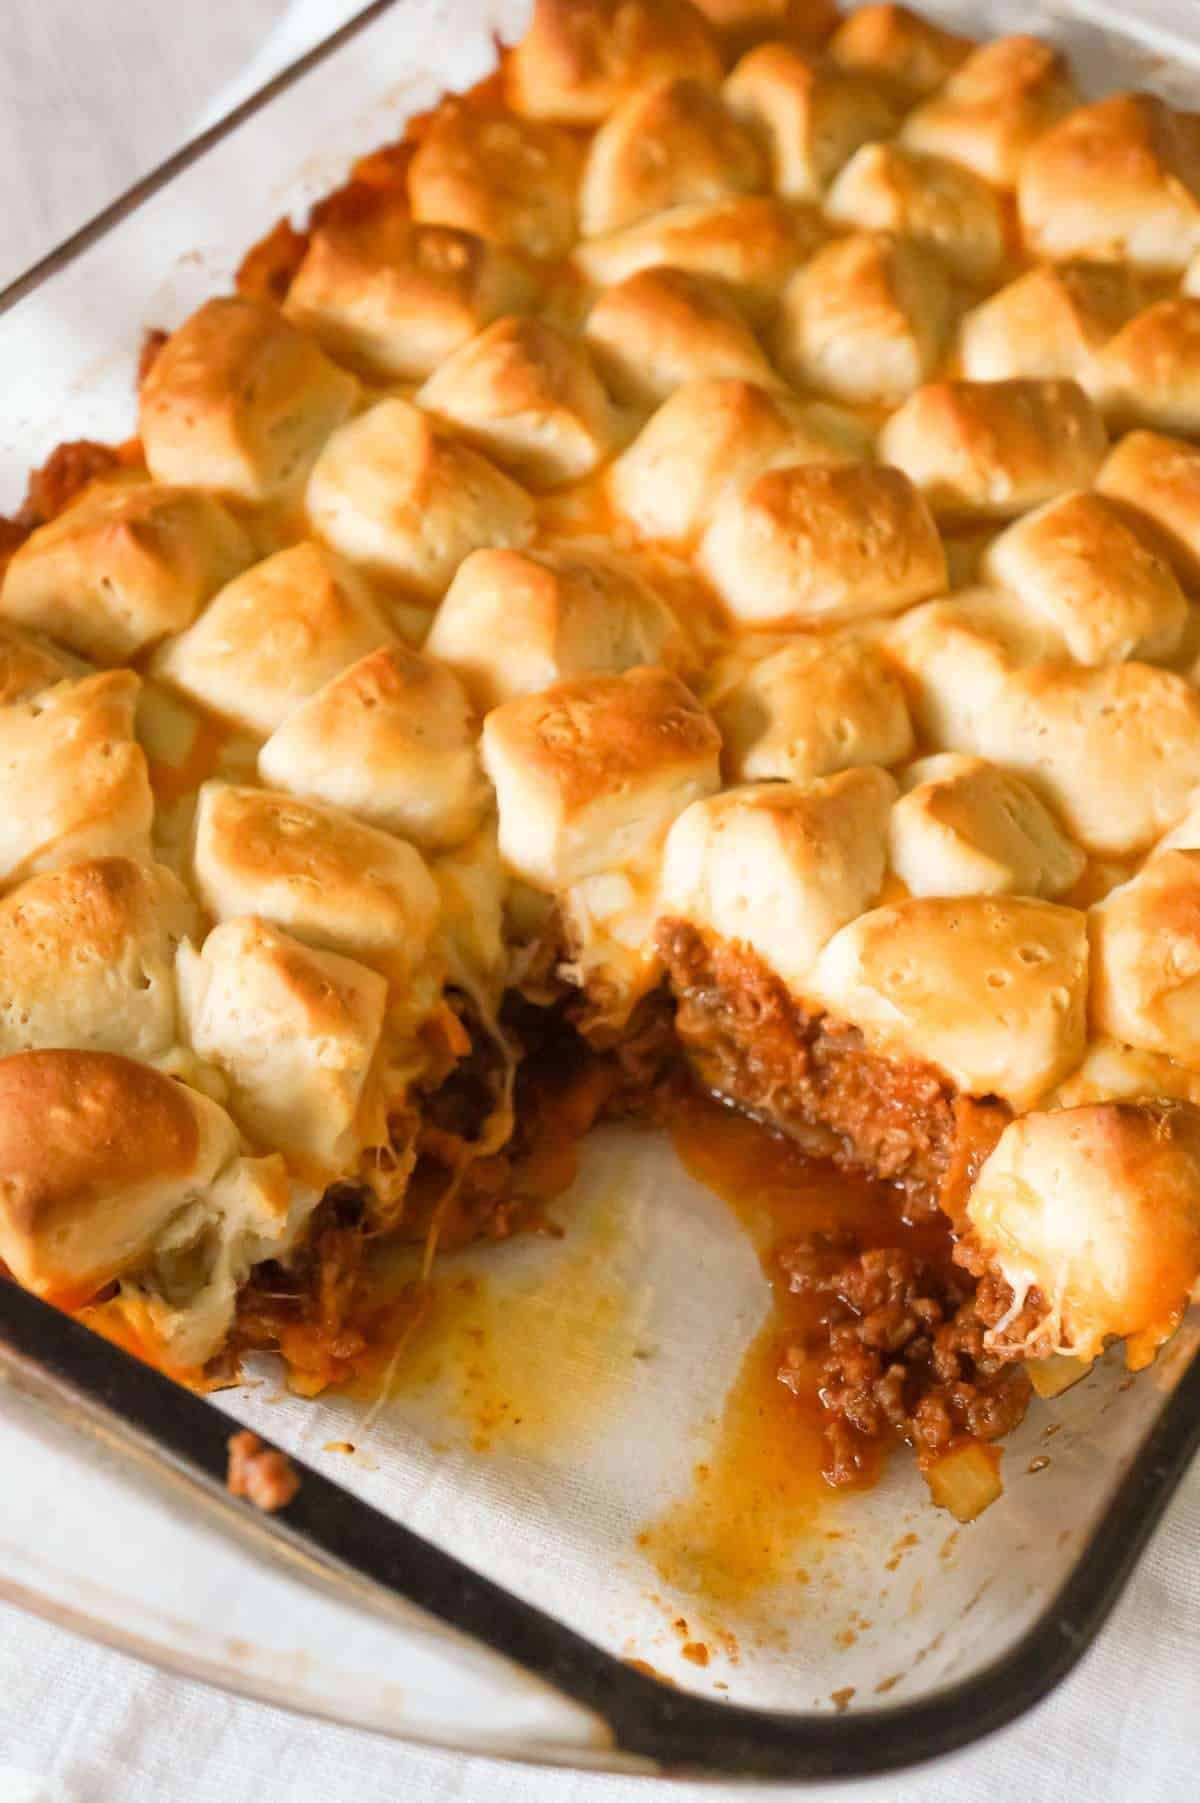 Sloppy Joe Biscuit Casserole Is An Easy Ground Beef Casserole Recipe Loaded With French S Fri Biscuits Casserole Sloppy Joes Biscuits Recipes Using Ground Beef